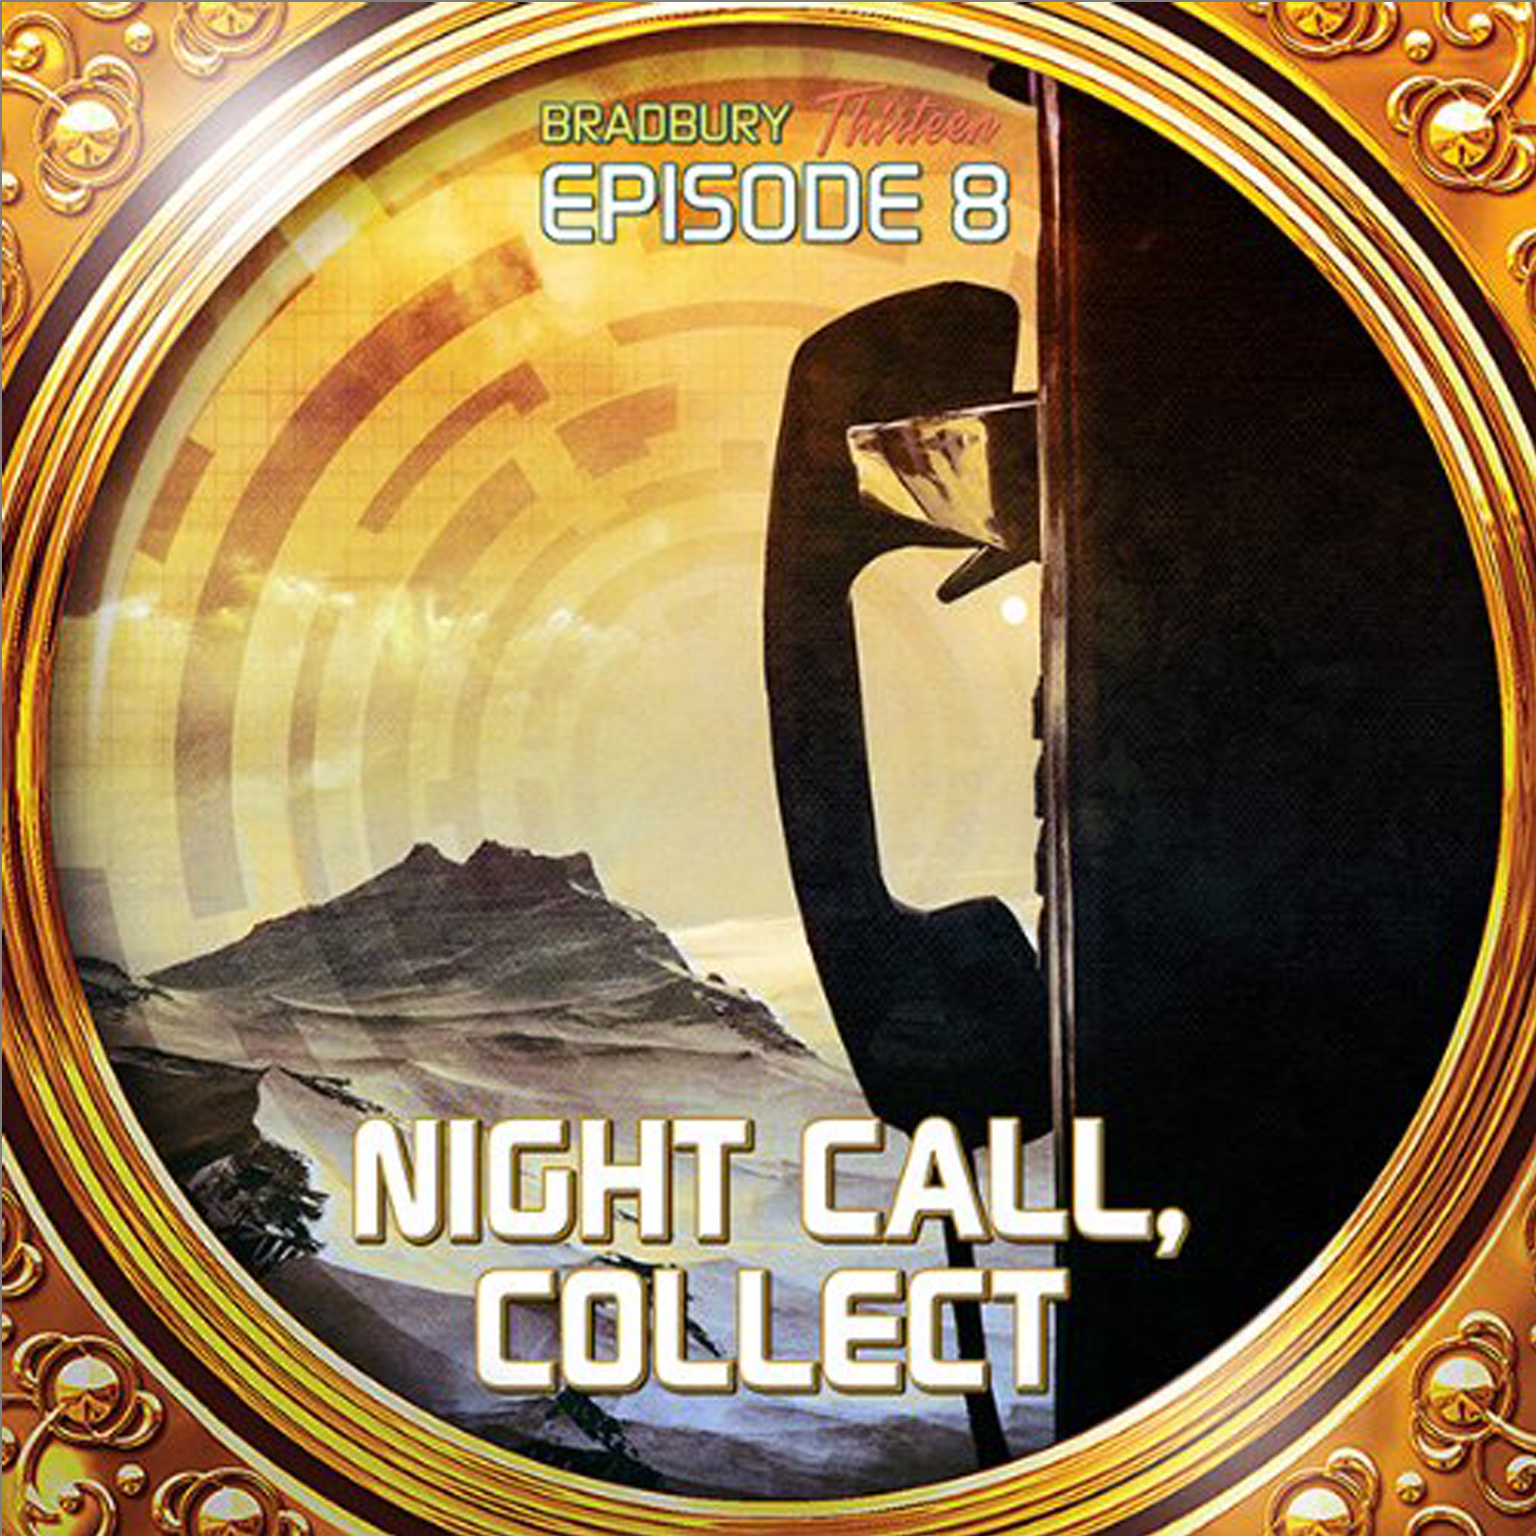 Printable Night Call, Collect: Bradbury Thirteen: Episode 8 Audiobook Cover Art